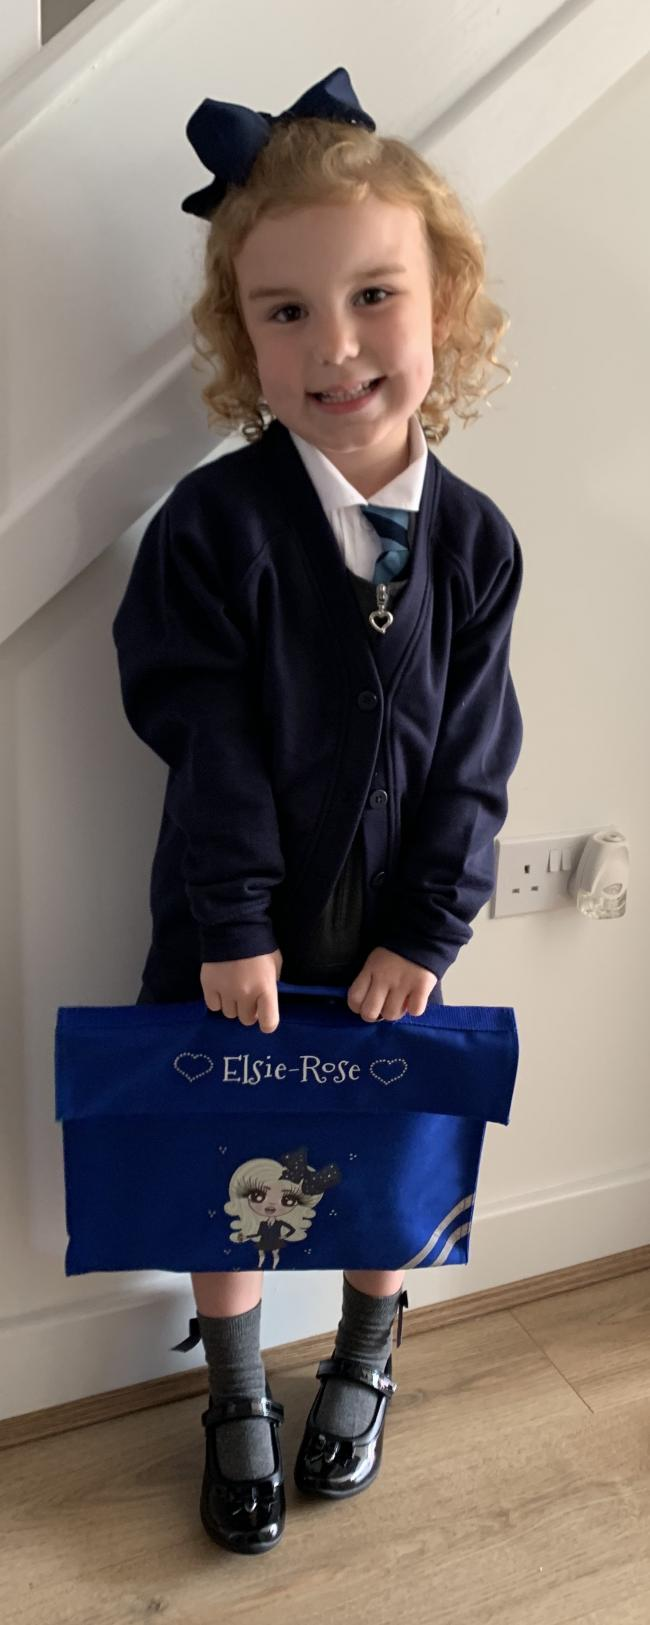 Elsie-Rose ready for her first day at Christ Church